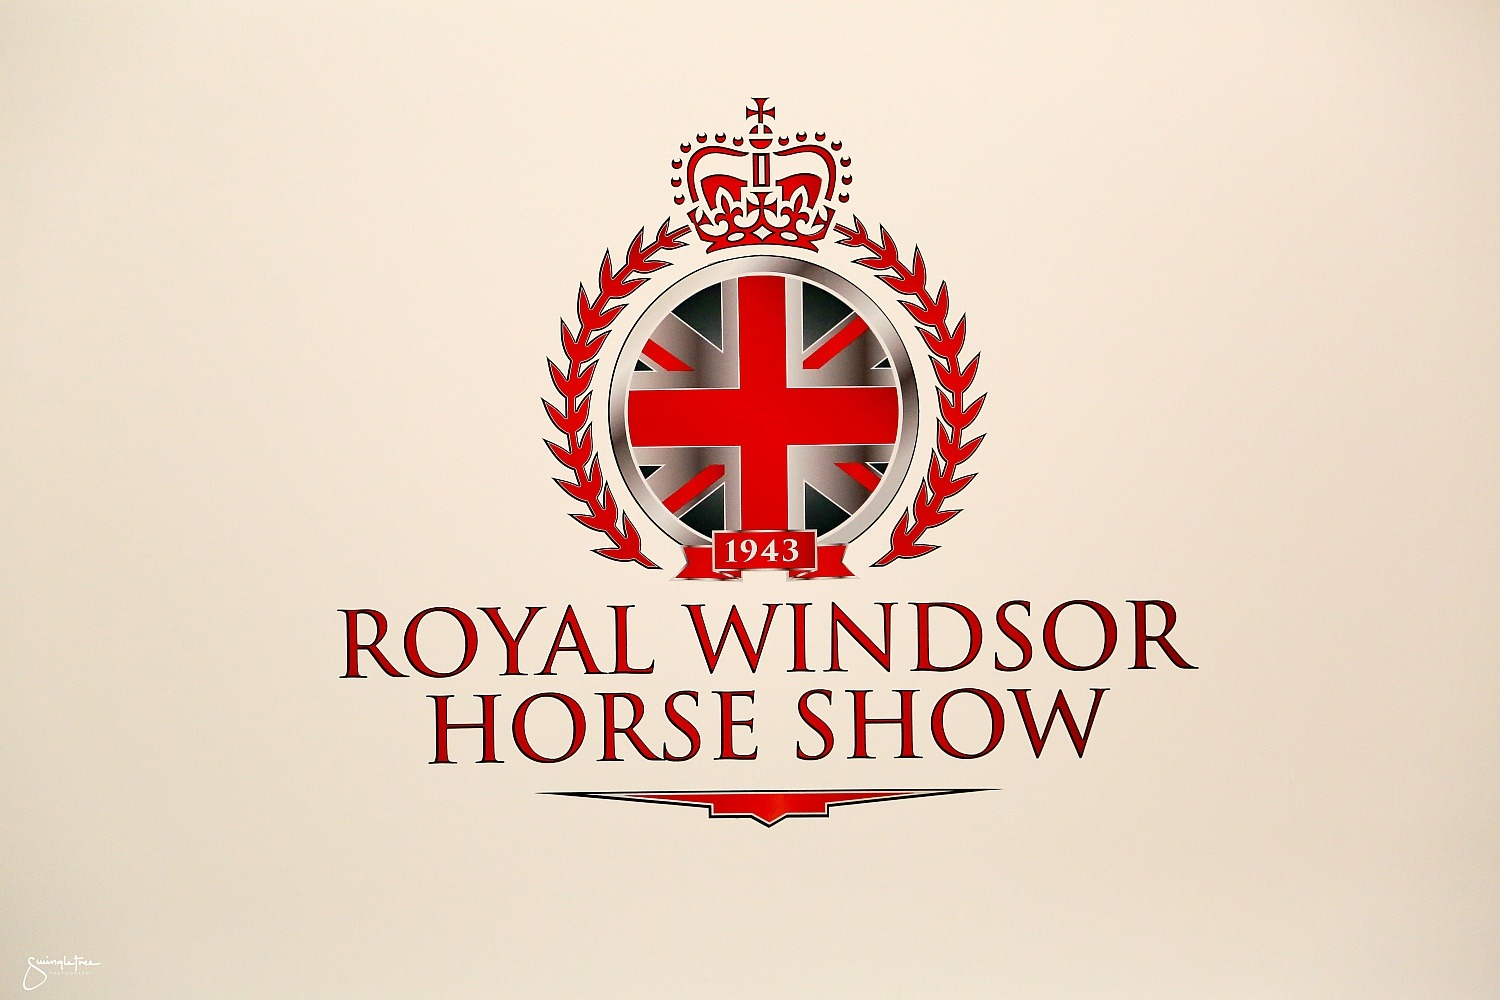 Royal Windsor Horse Show - Press & Media